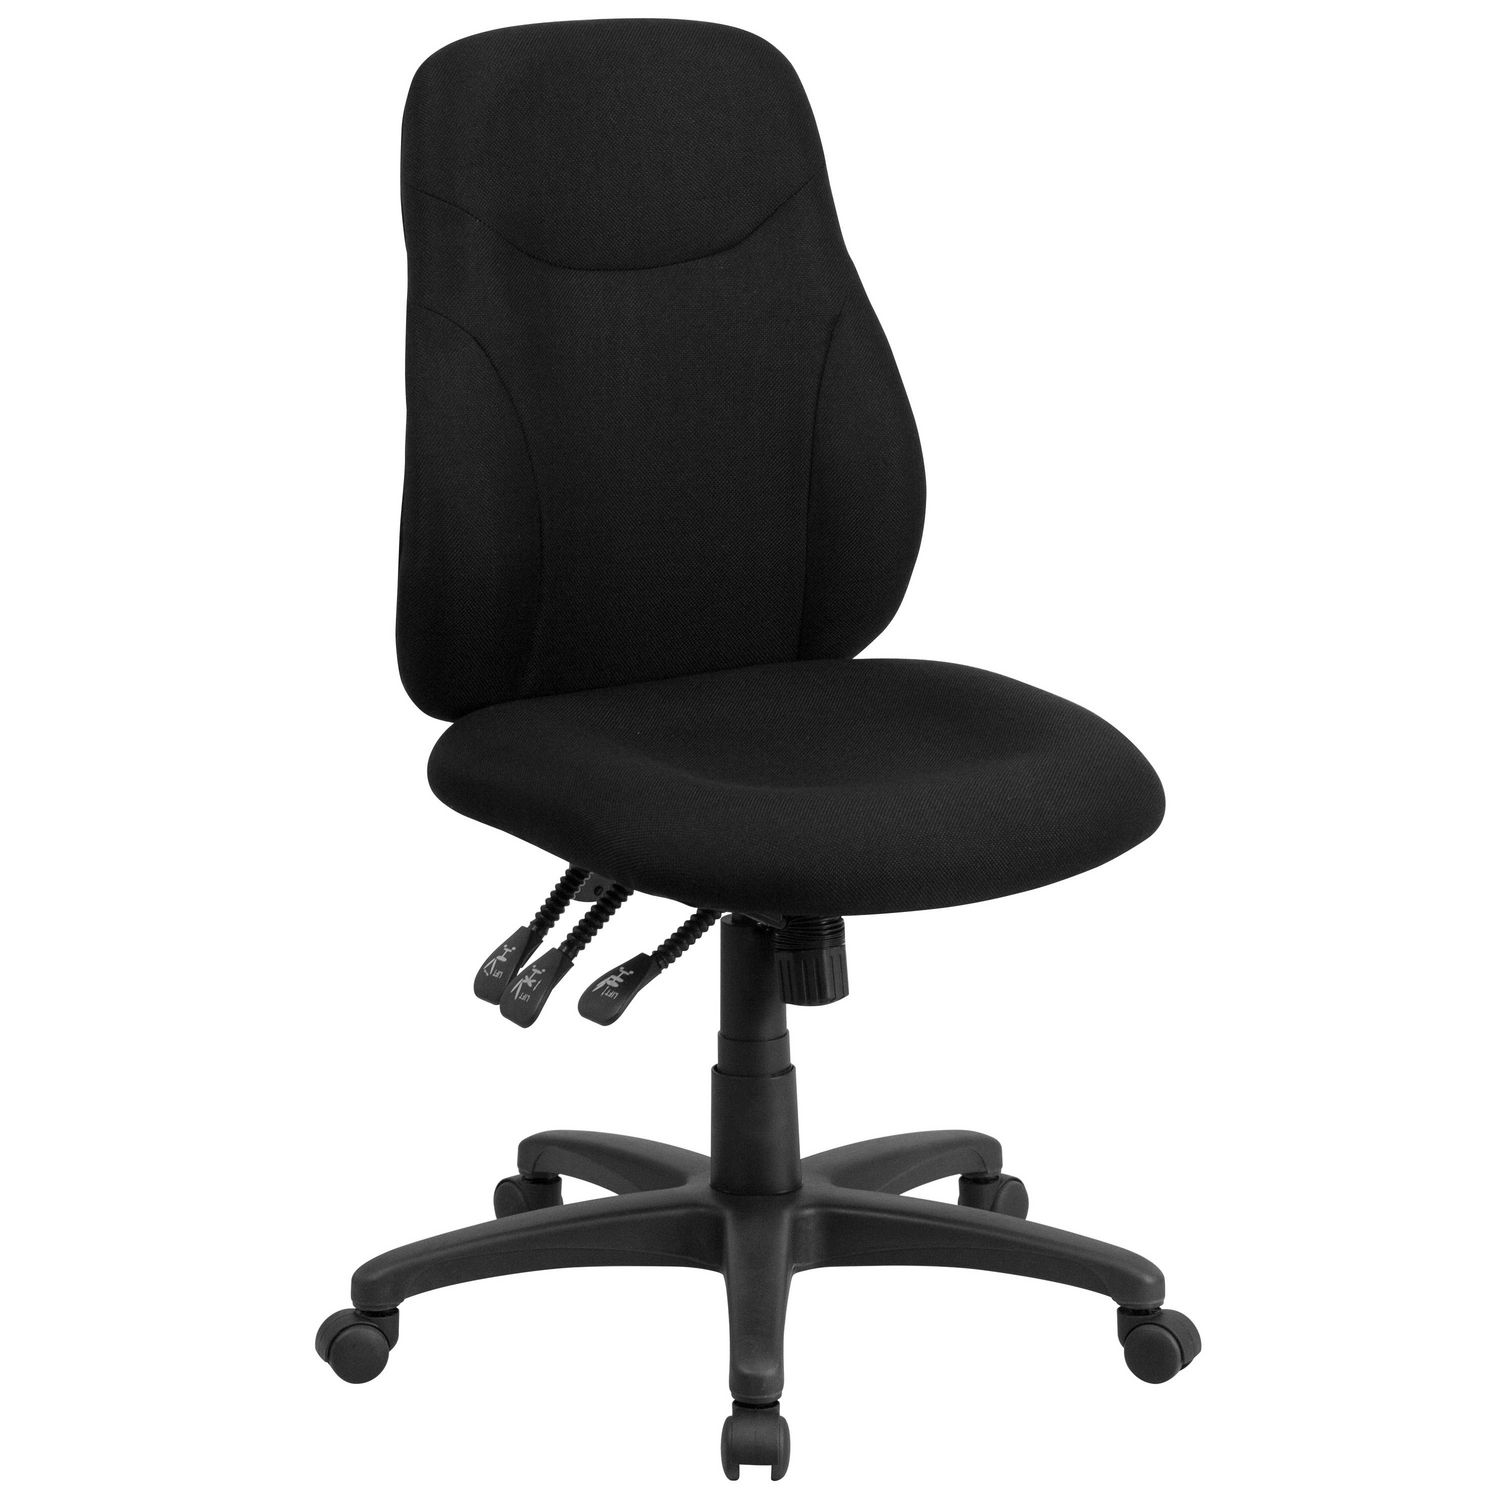 How To Adjust Office Chair Mid Back Black Fabric Multifunction Swivel Ergonomic Task Office Chair